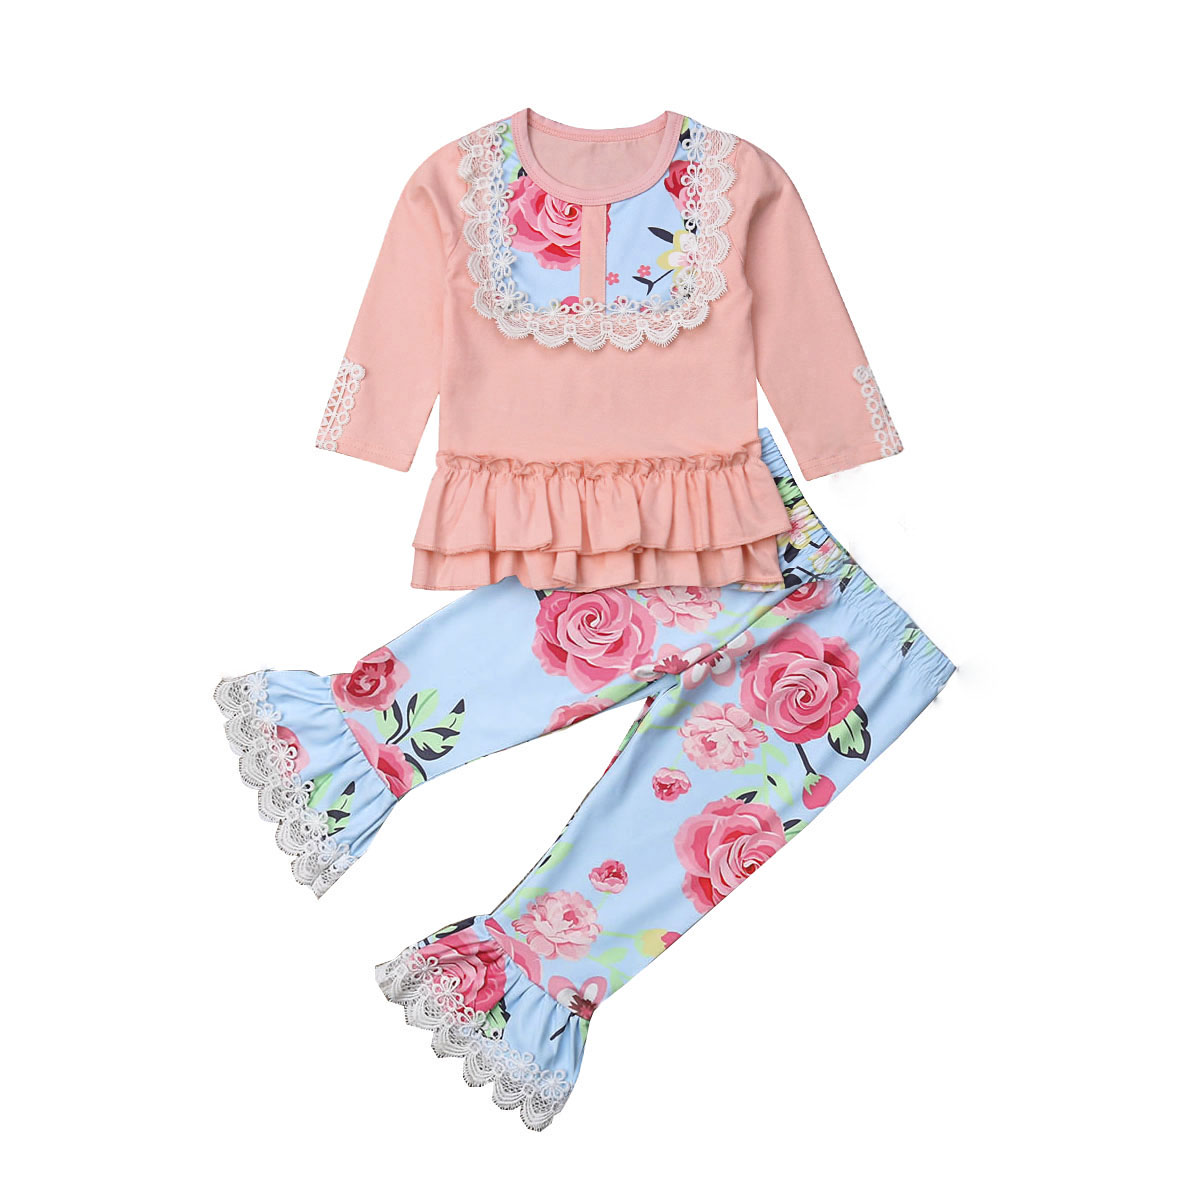 Cute Kids Girl Clothes Set Flare Ruffle Long Sleeve Tops and Leggings Pants 2pcs Outfits